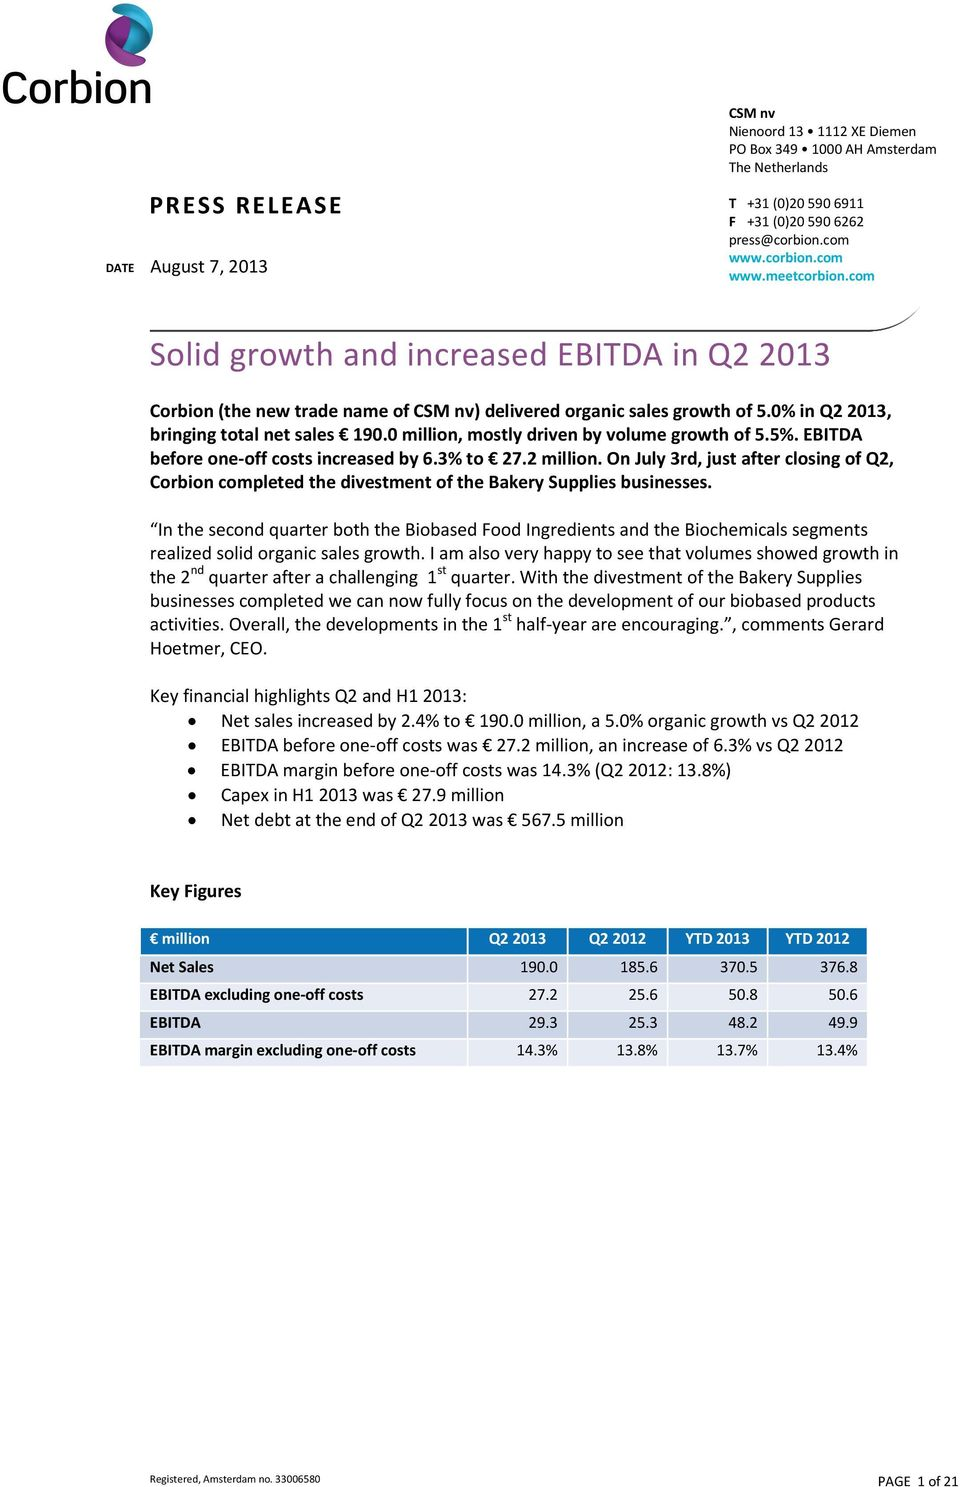 0 million, mostly driven by volume growth of 5.5%. EBITDA before one-off costs increased by 6.3% to 27.2 million.